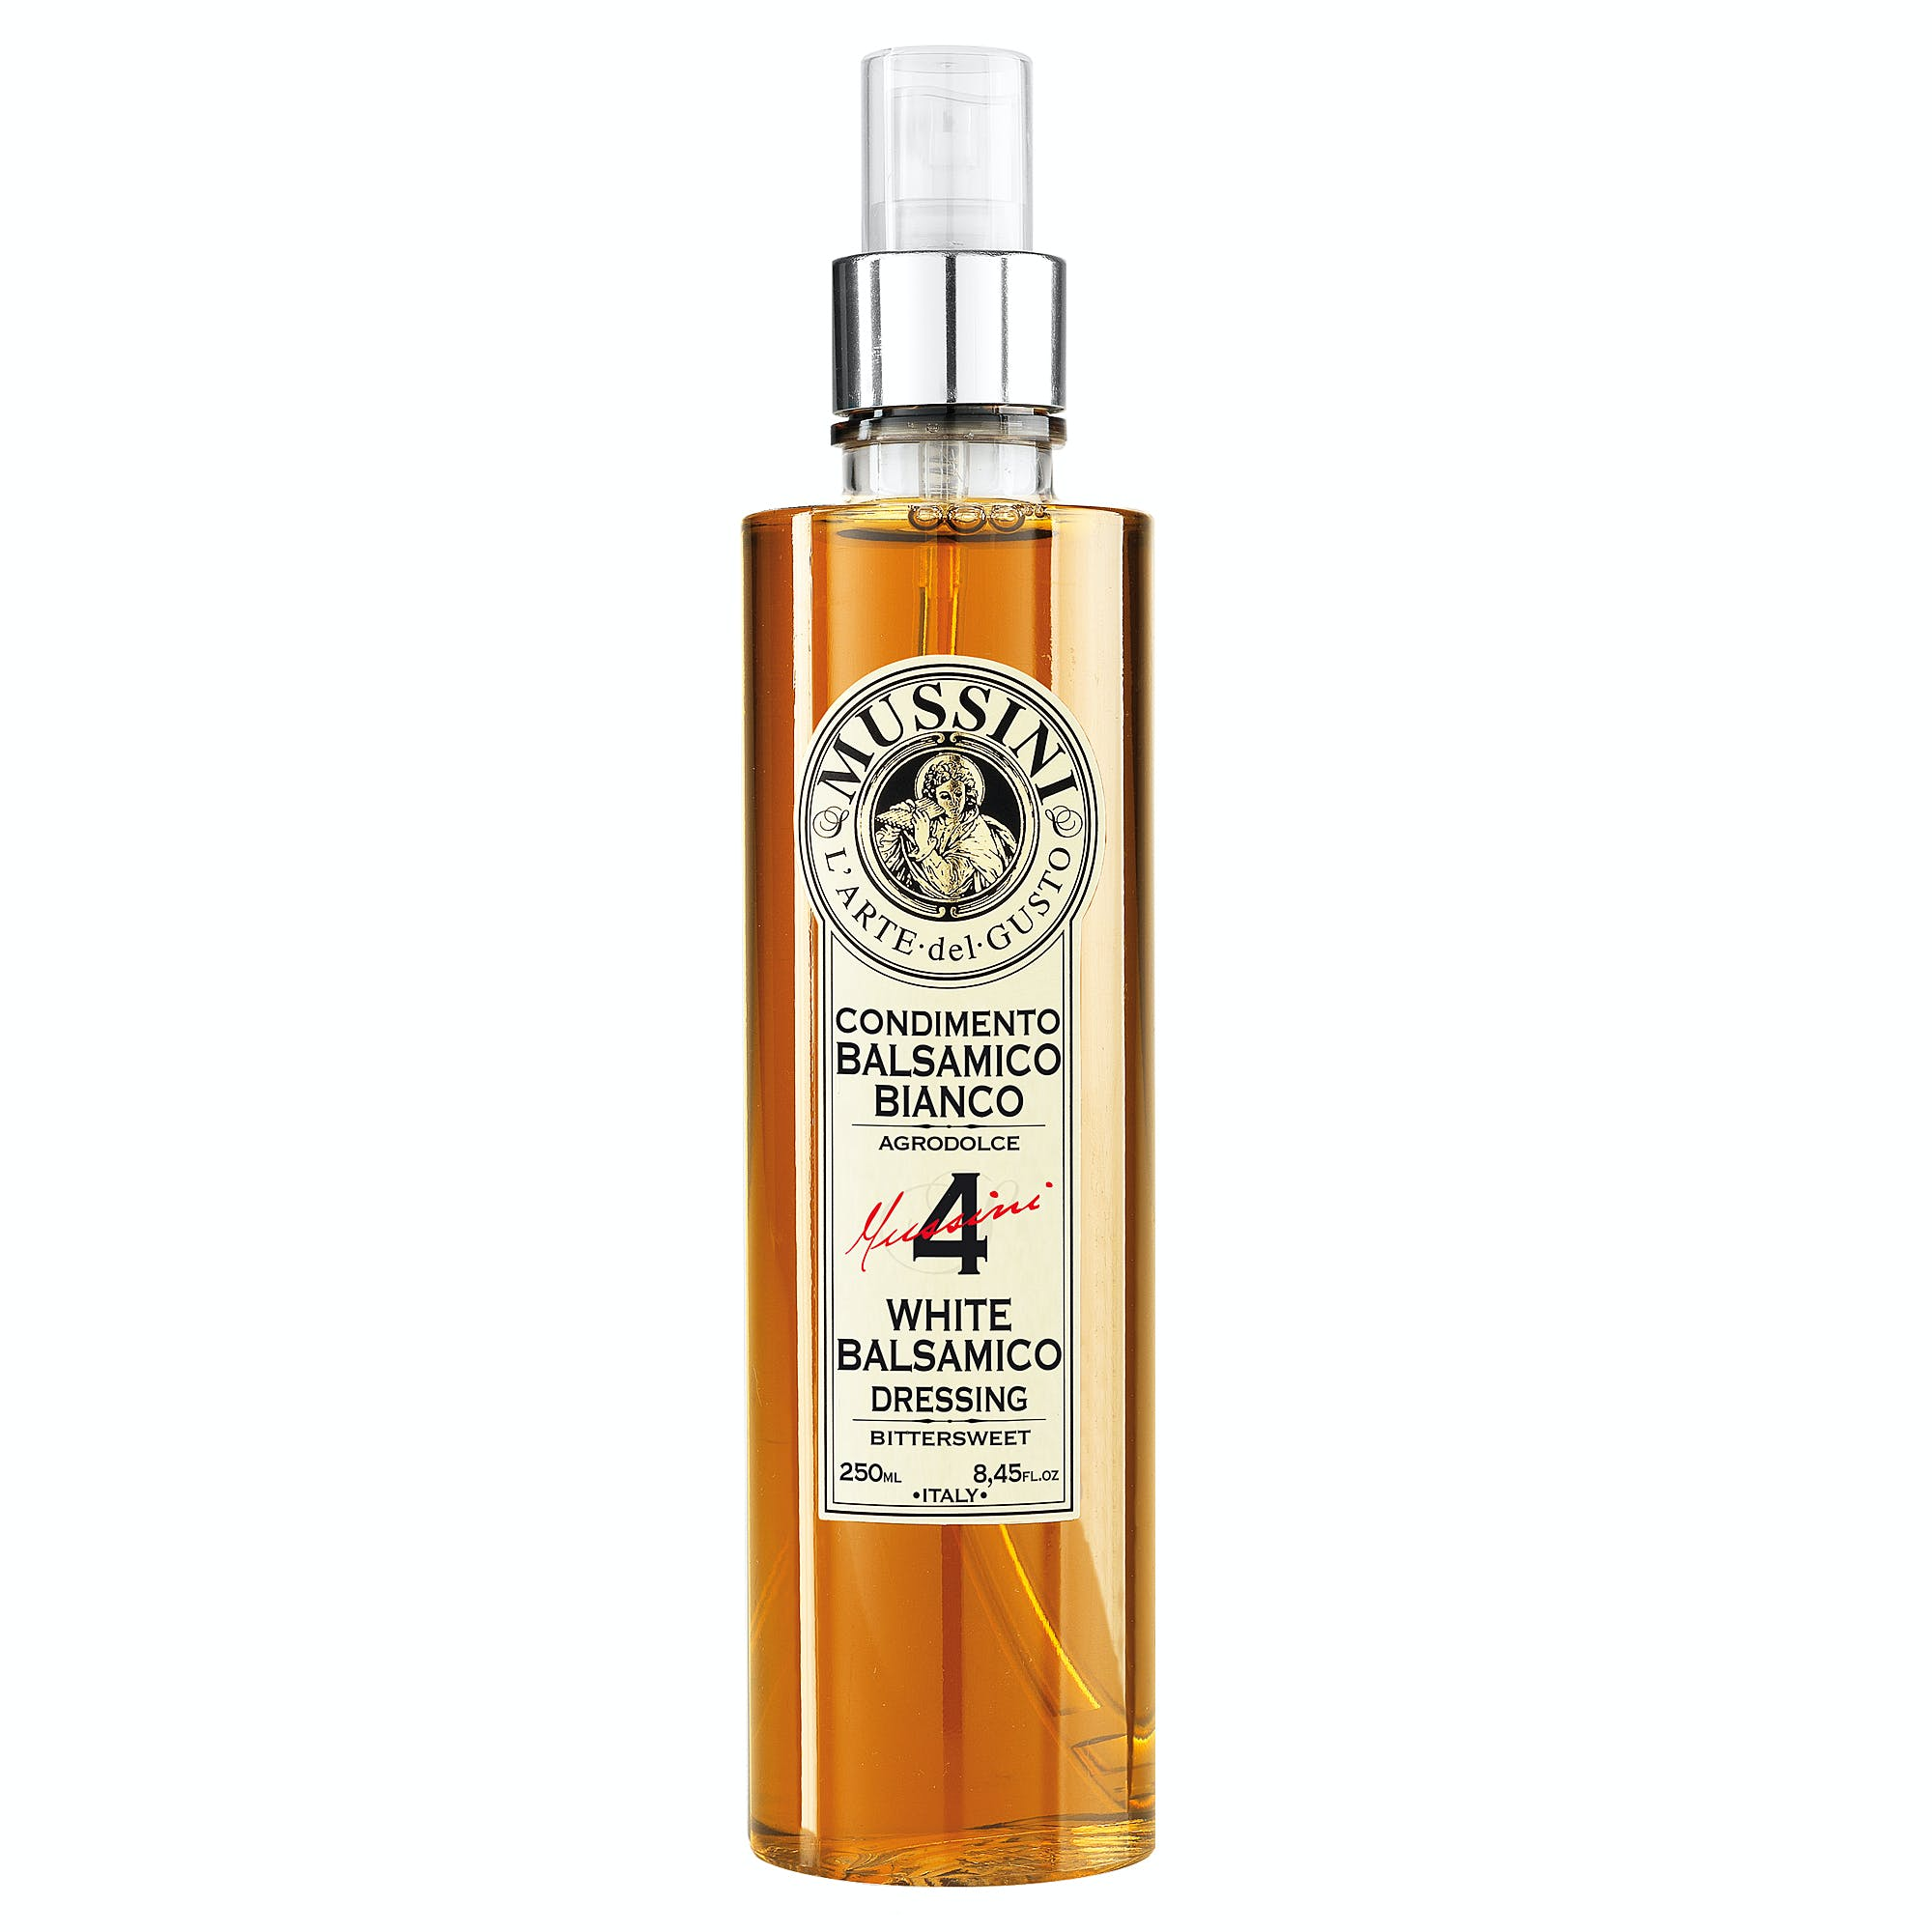 4 Year White Bittersweet Balsamic Vinegar Spray Balsamic Vinegar sold by M5 Corporation